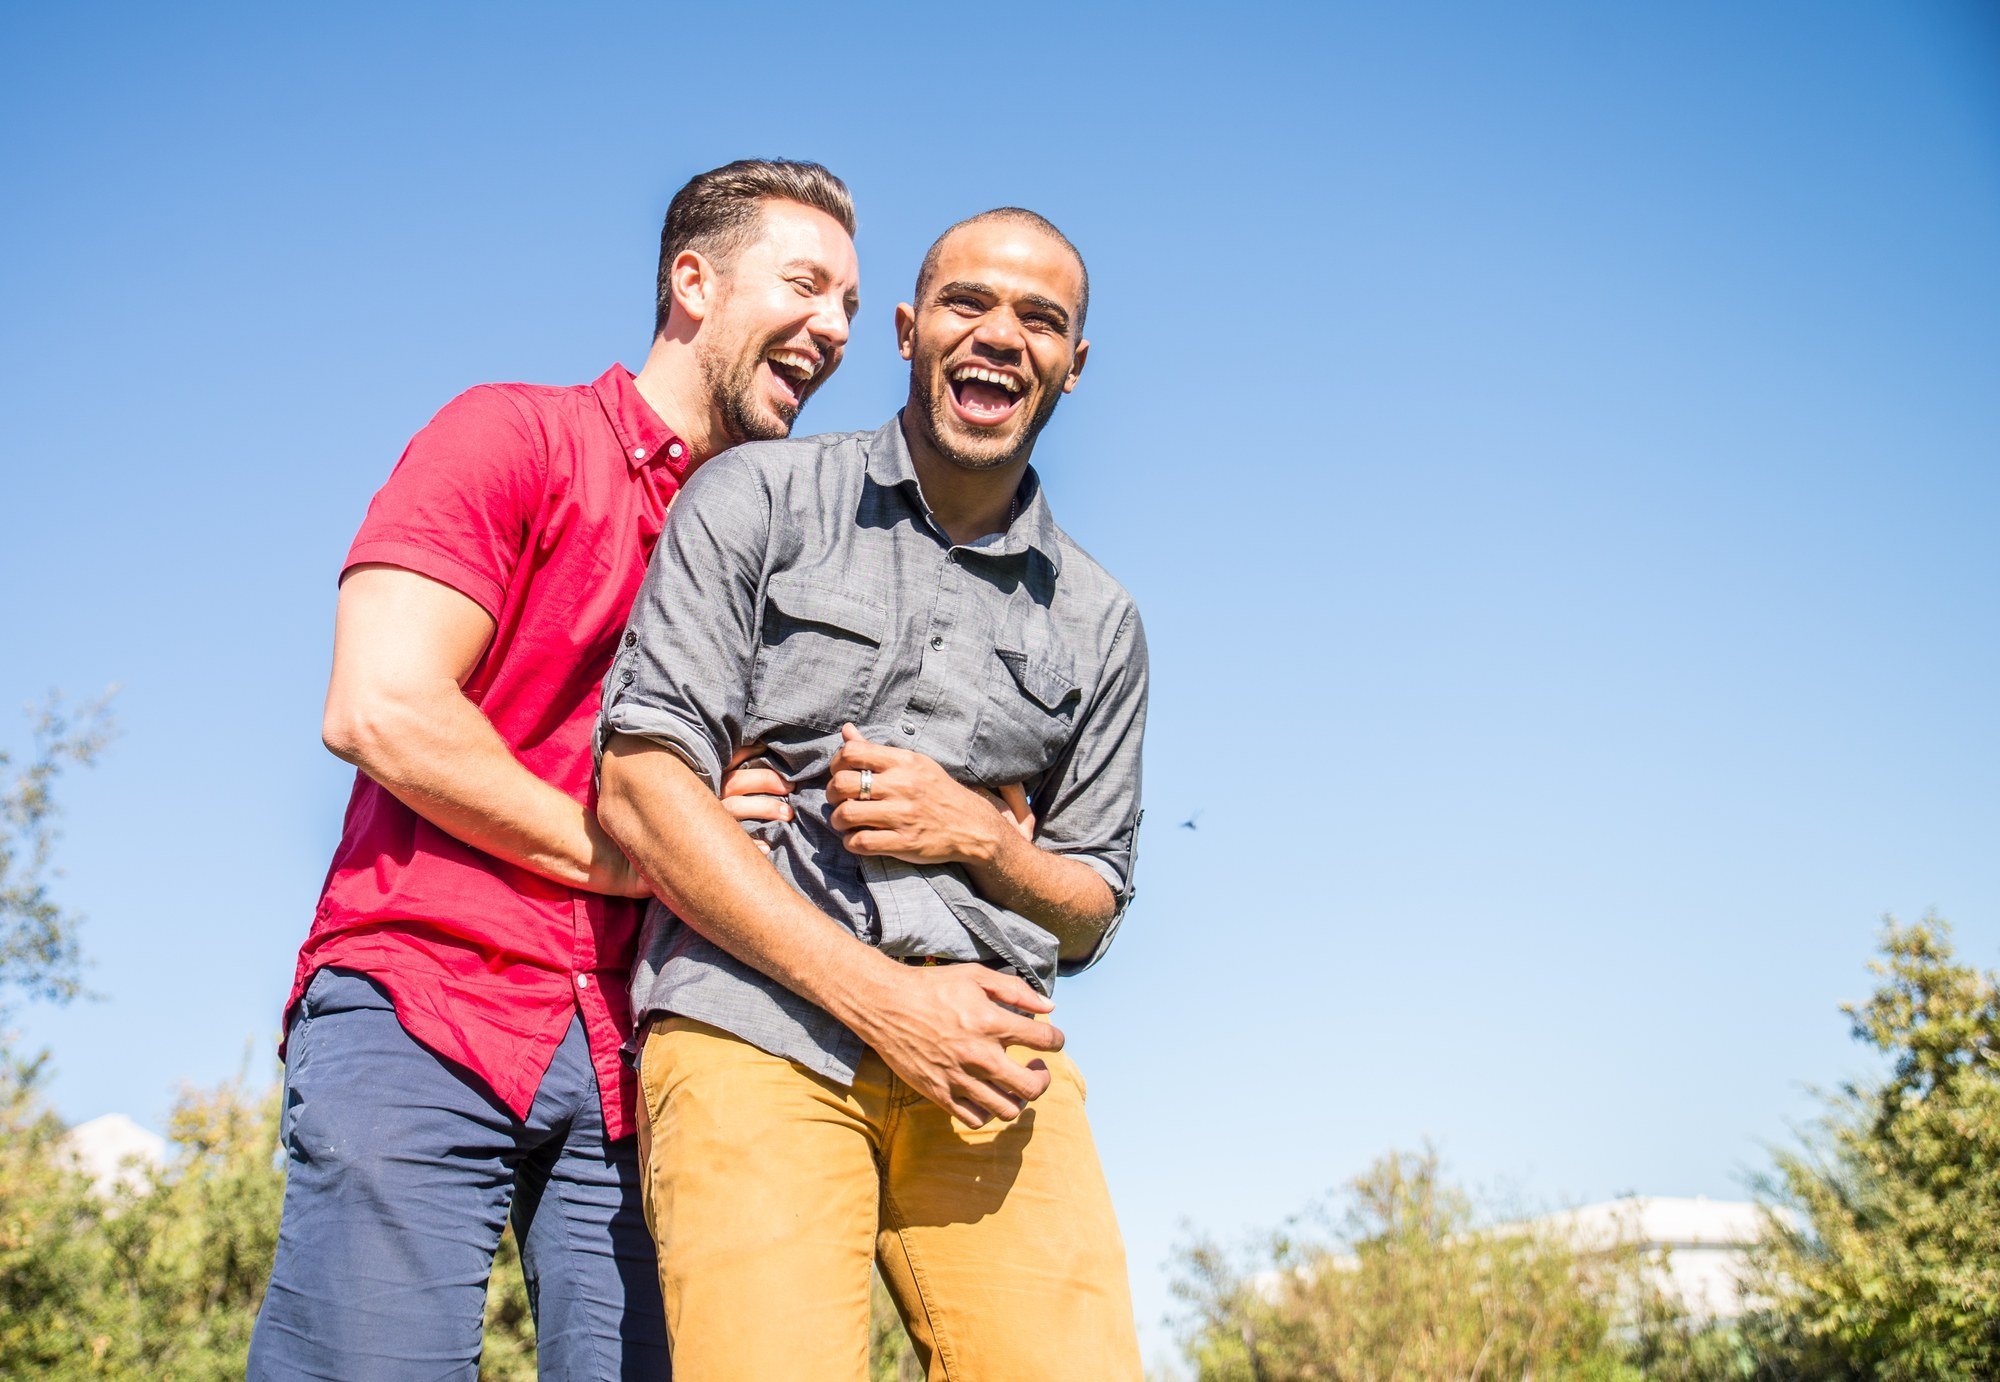 Gay male couple laughing